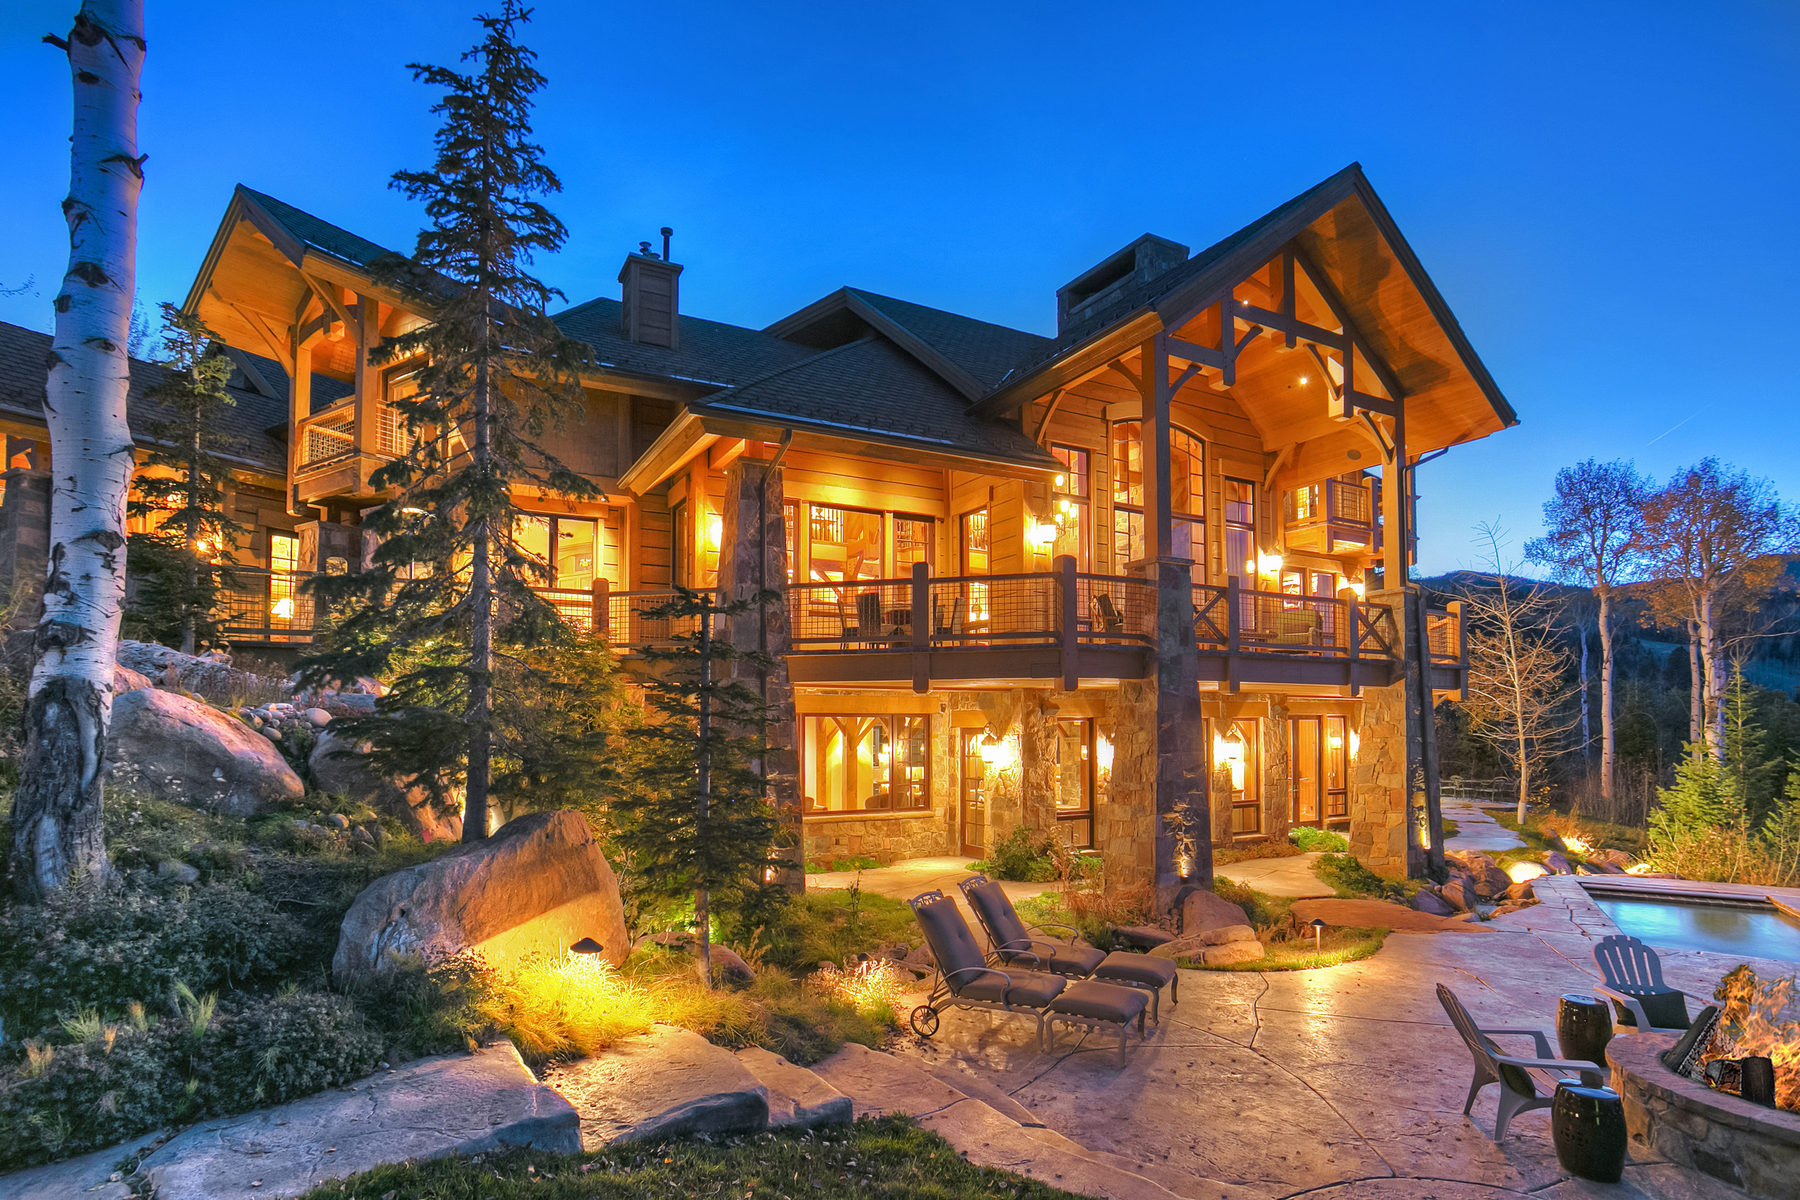 Casa Unifamiliar por un Venta en Ski In/Out Mountain Chateau at Park City 10 Minutes to Main Street 12 White Pine Canyon Rd Park City, Utah 84098 Estados Unidos